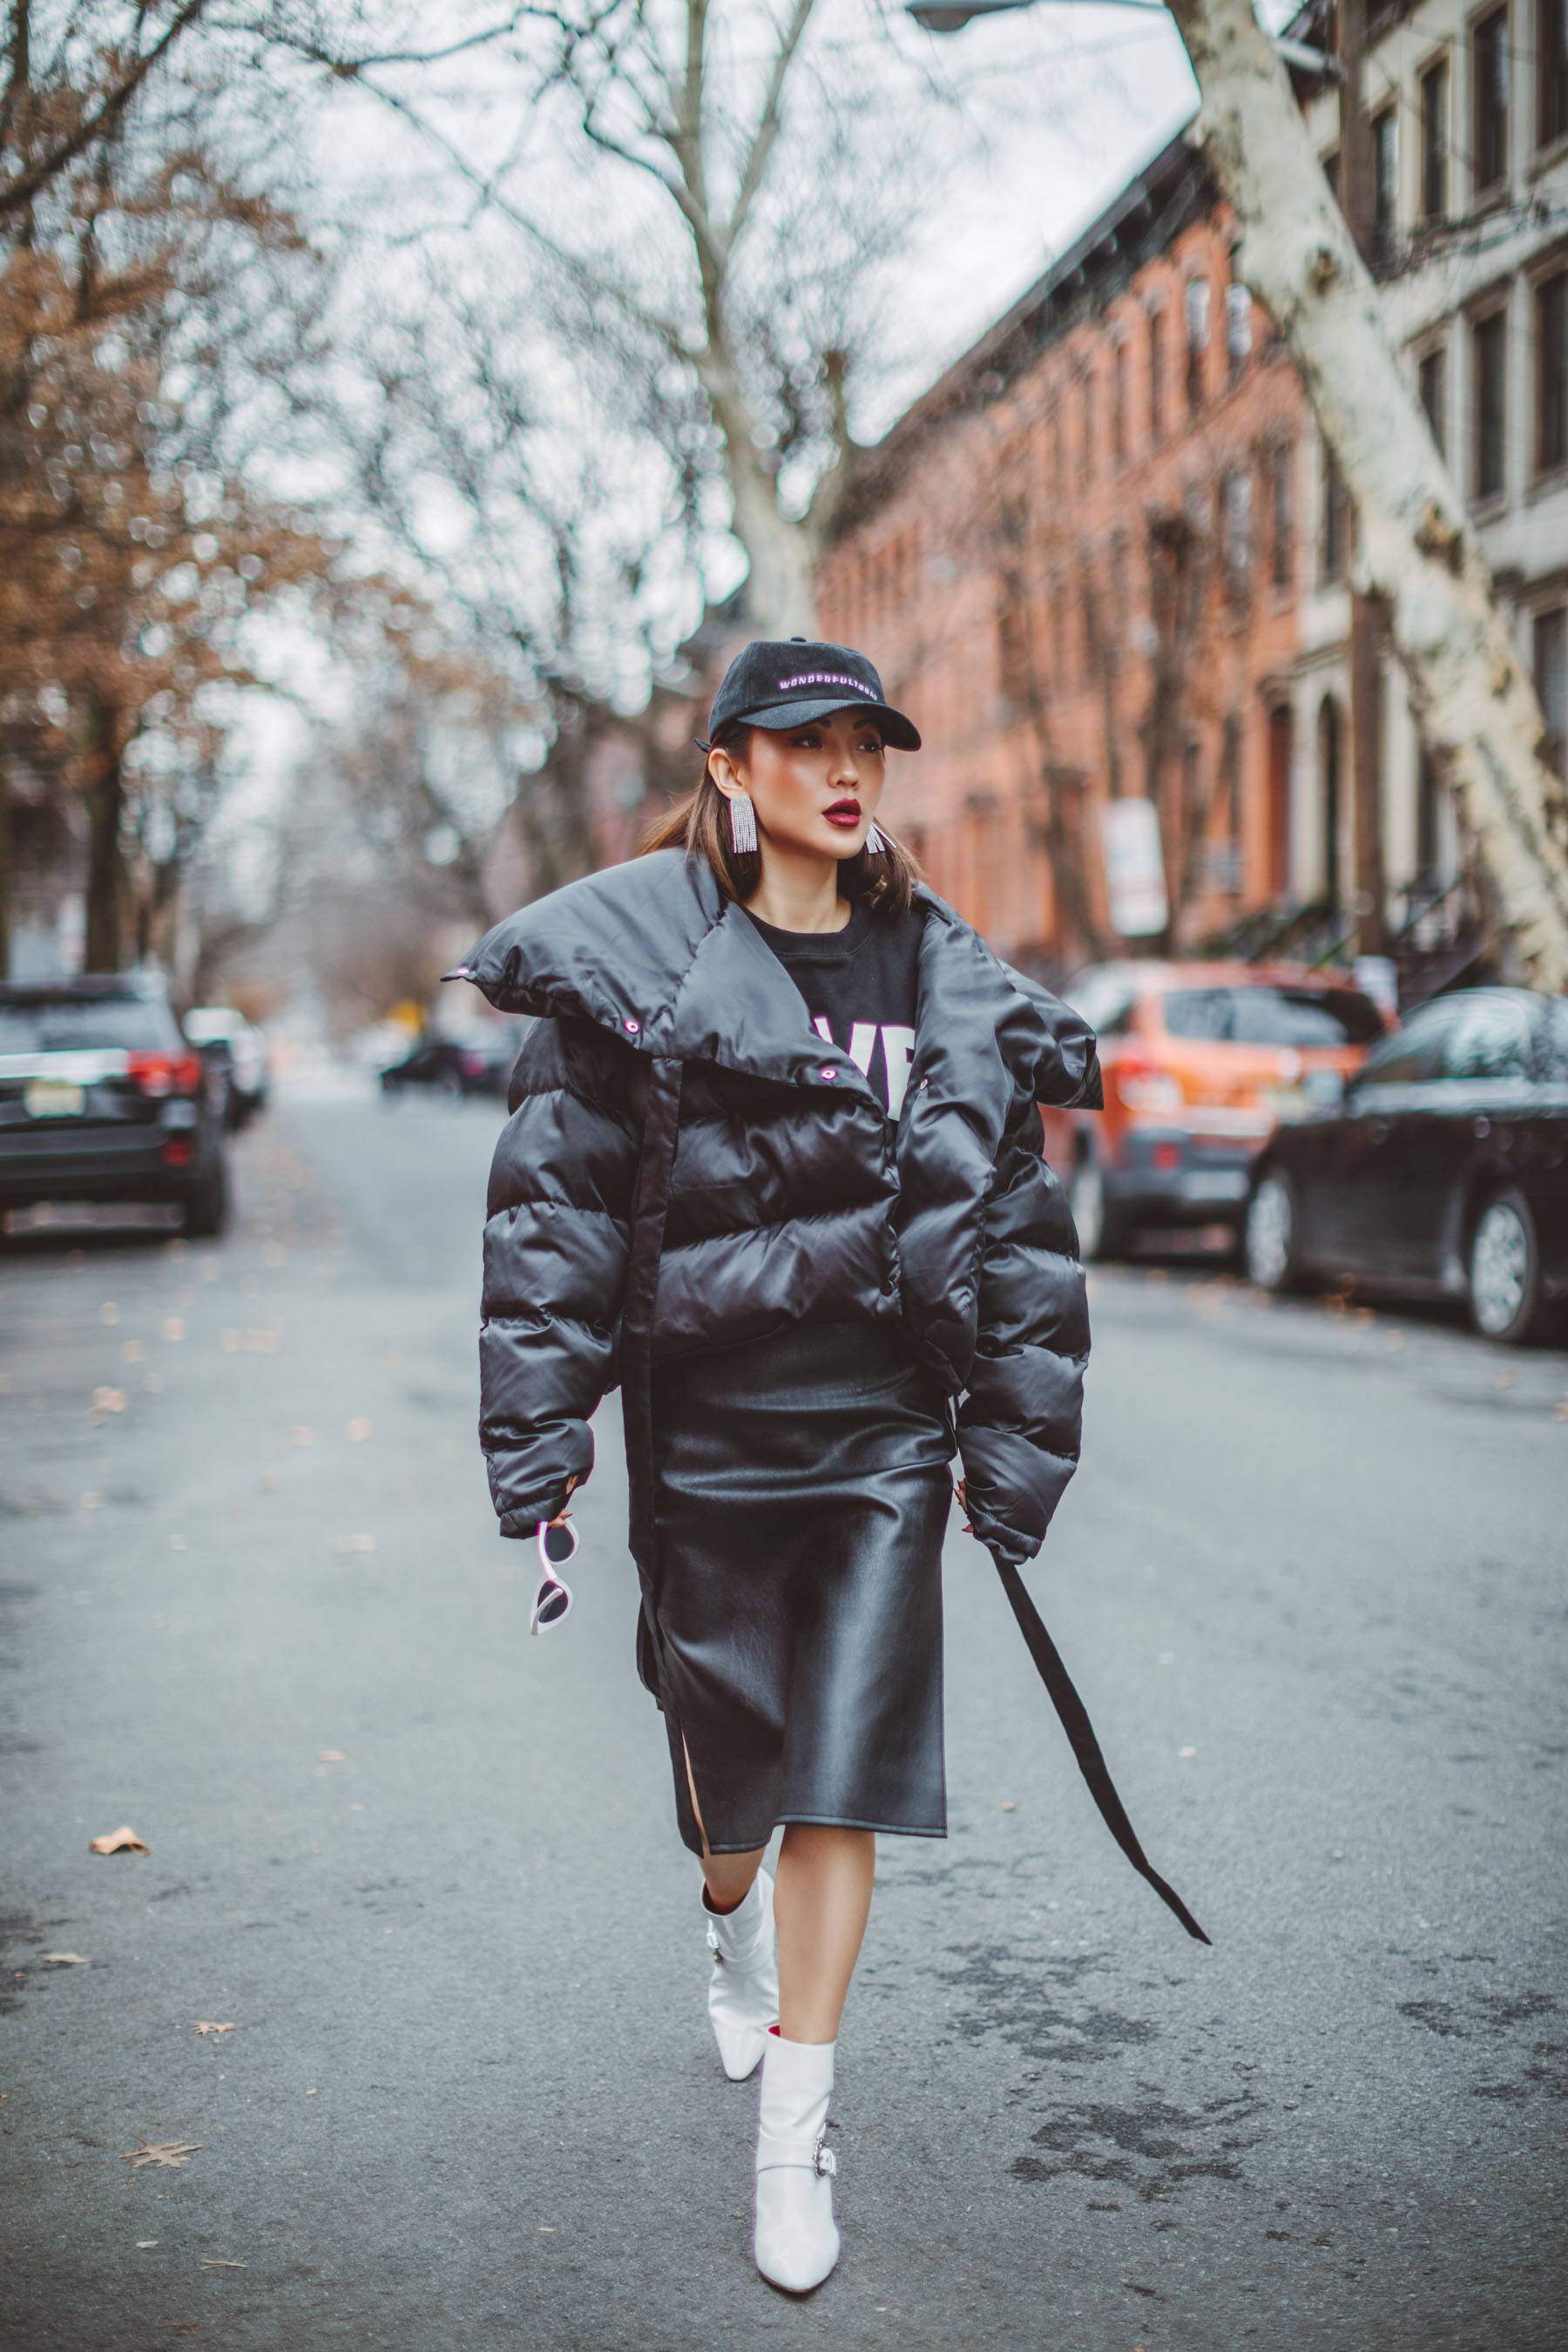 How to Look Stylish in a Quilted Puffer Jacket // Notjessfashion.com // Black quilted puffer jacket, white ankle boots, black oversized sweater, leather skirt, urban outfit, edgy fashion look, baseball cap, pink sunglasses, new york fashion blogger, asian blogger, how to dress edgy, new york street style, edgy street style